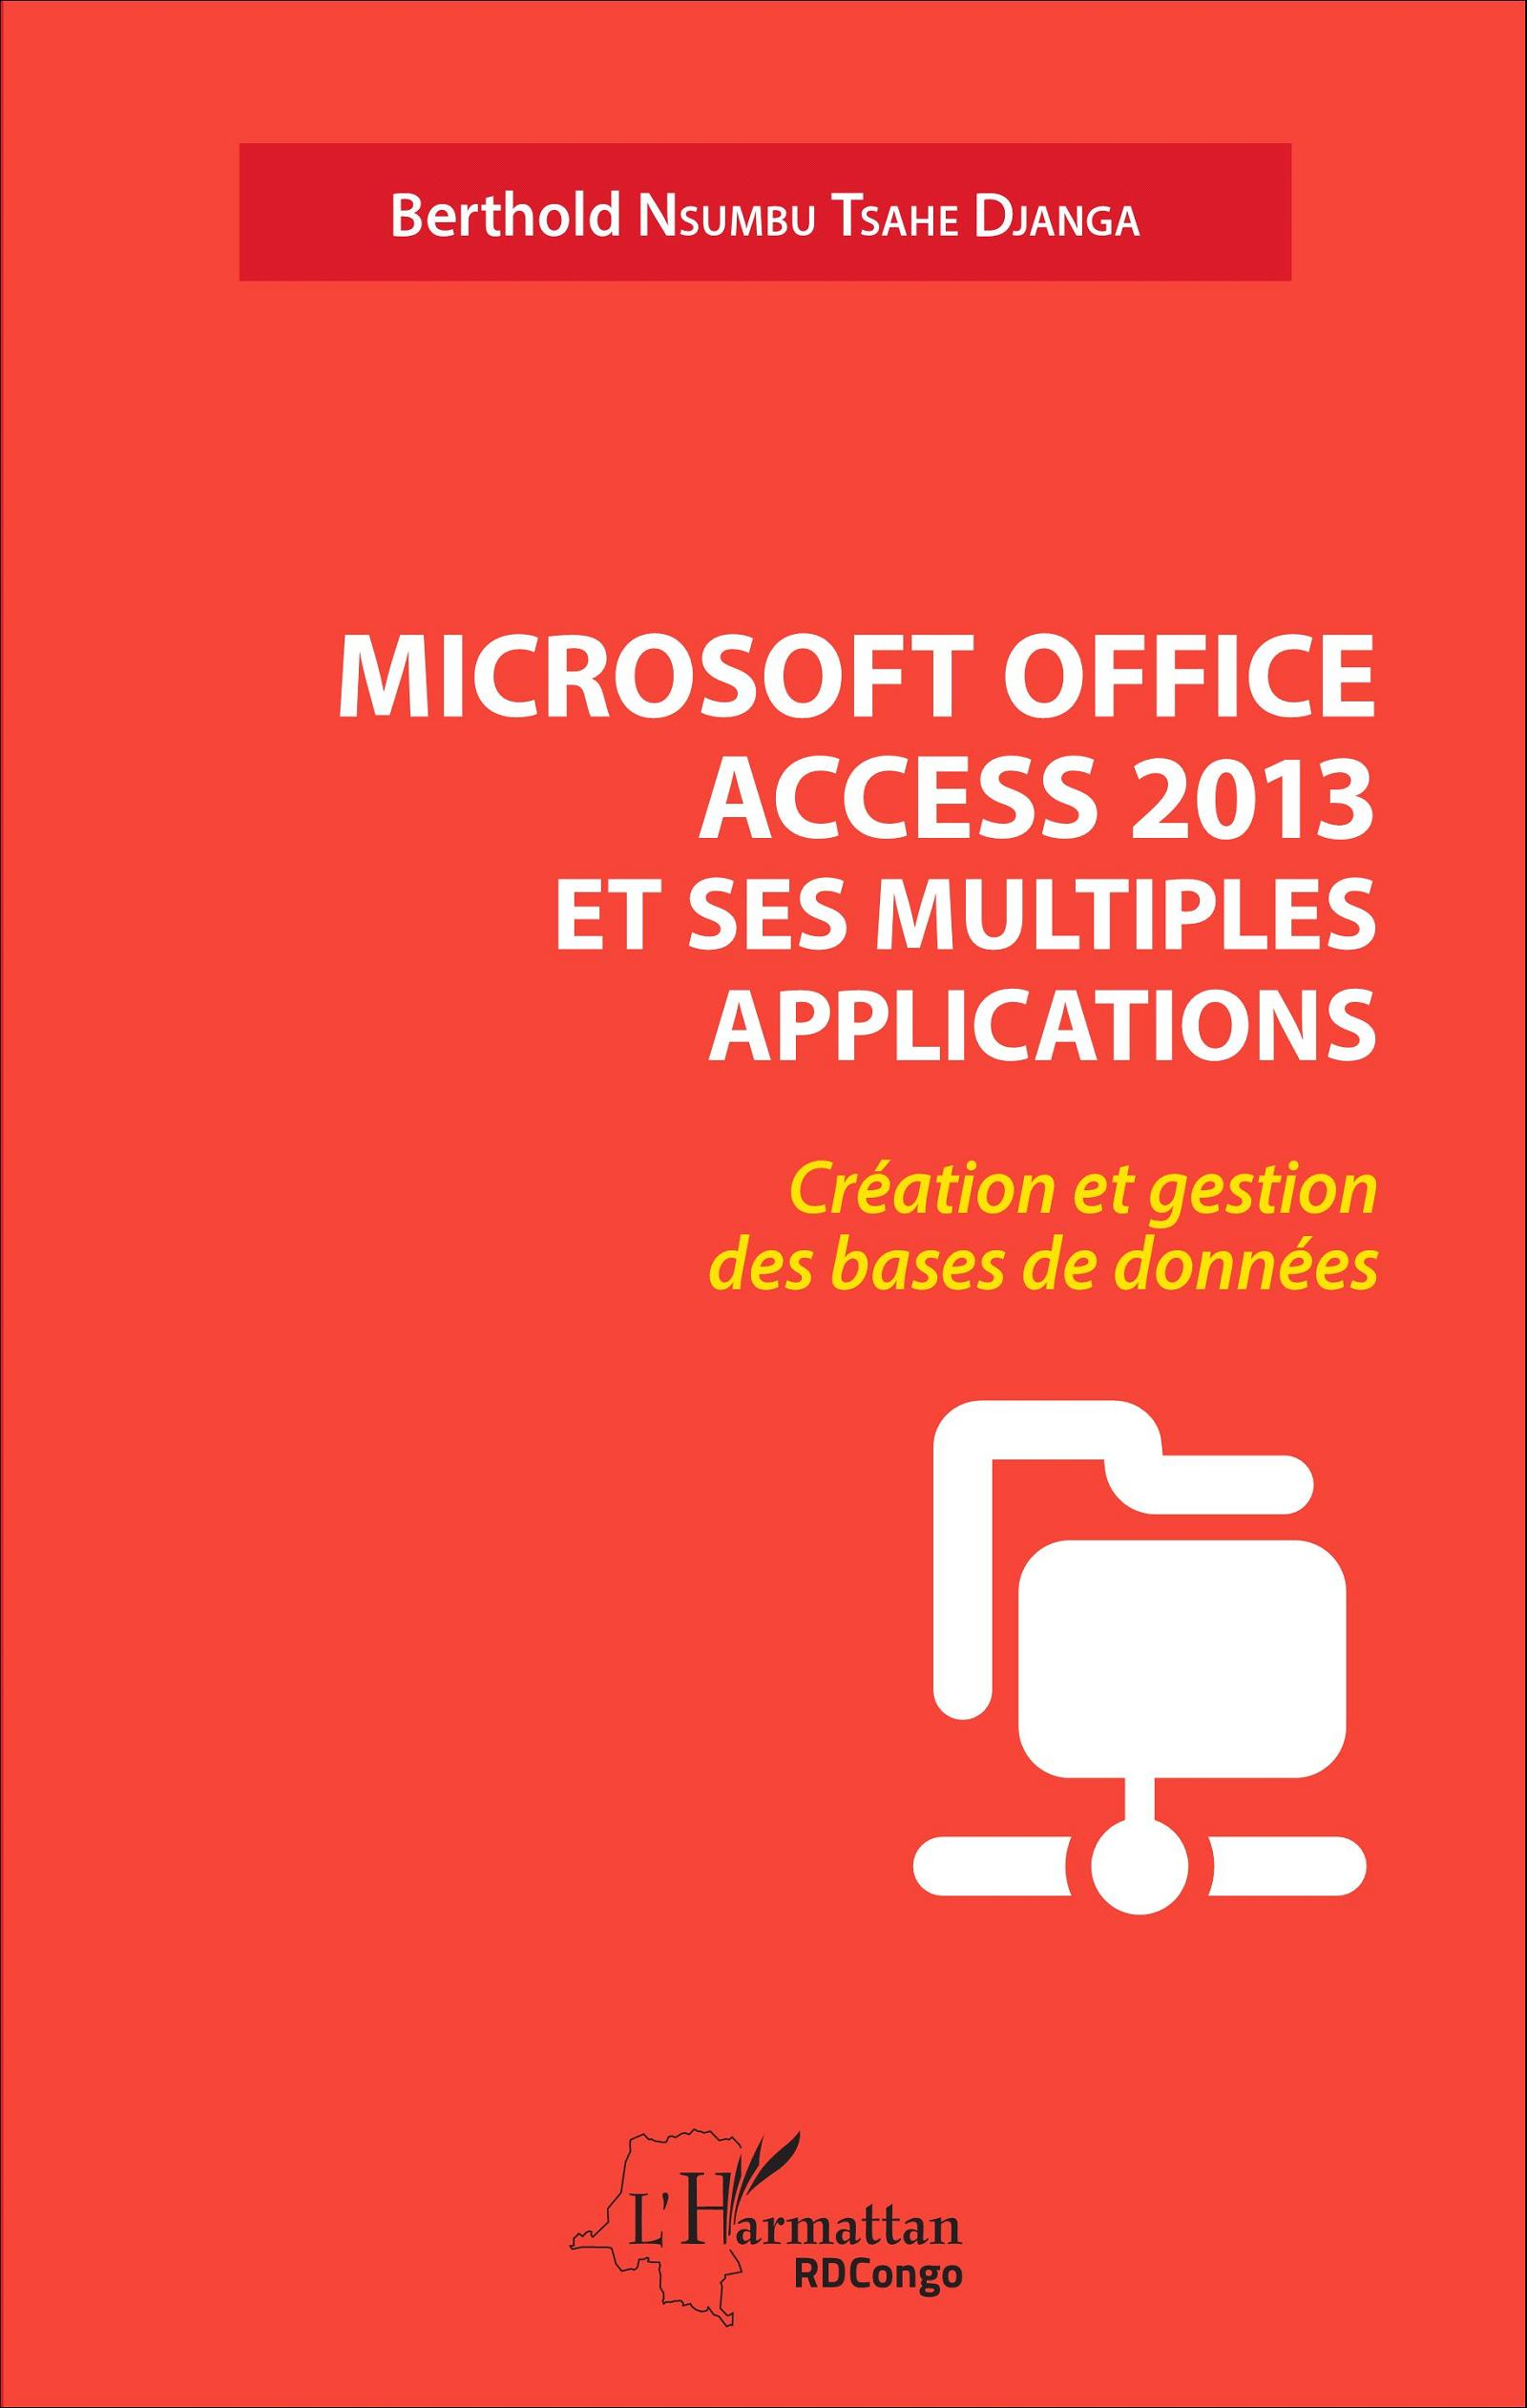 Microsoft office access 2013 et ses multiples applications